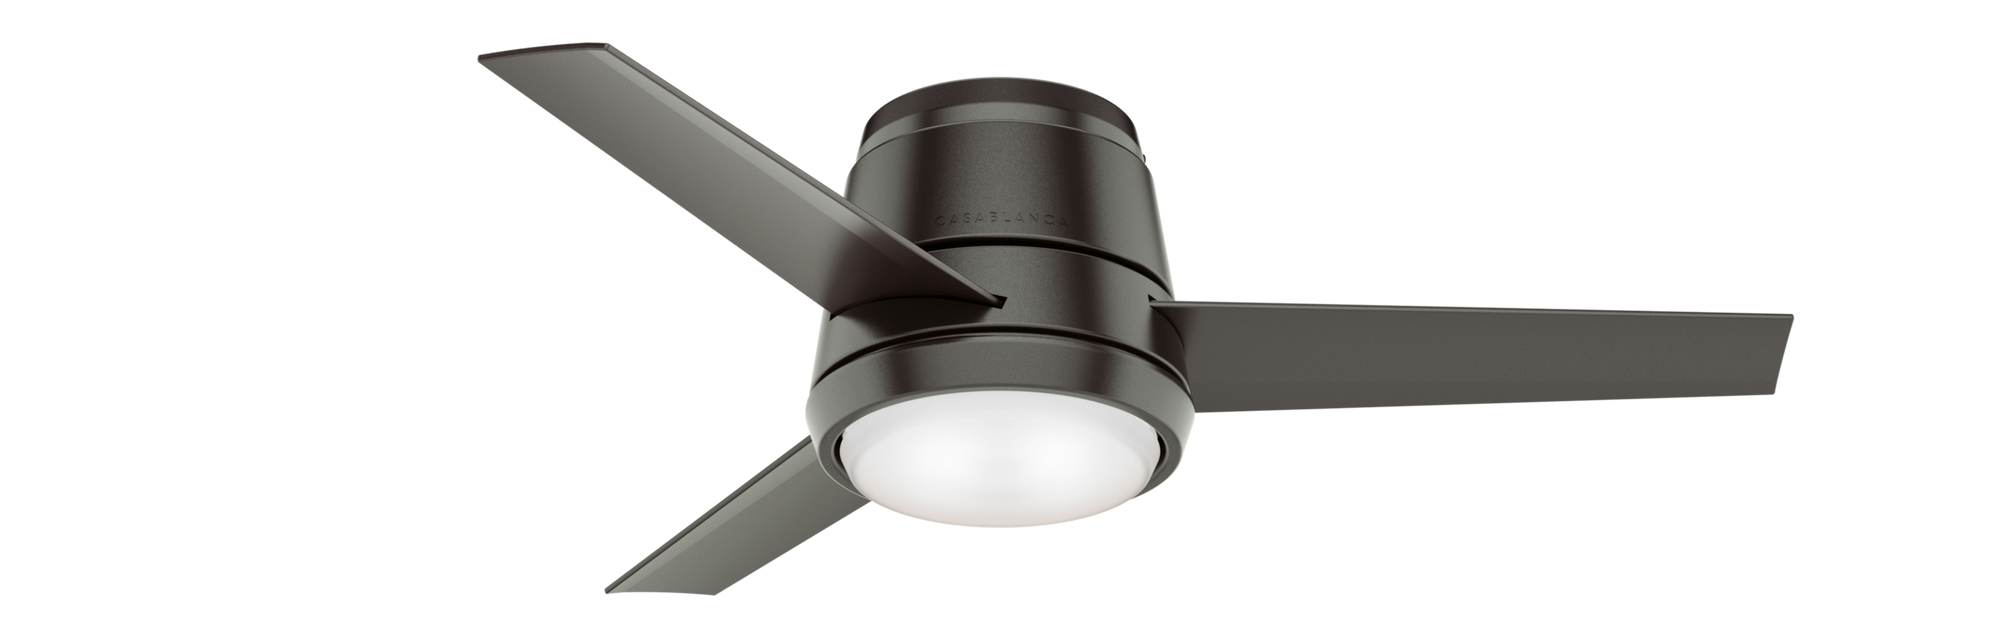 Casablanca Indoor Low Profile Commodus Ceiling Fan with LED LightJD inch, Bronze/Brown, 59569